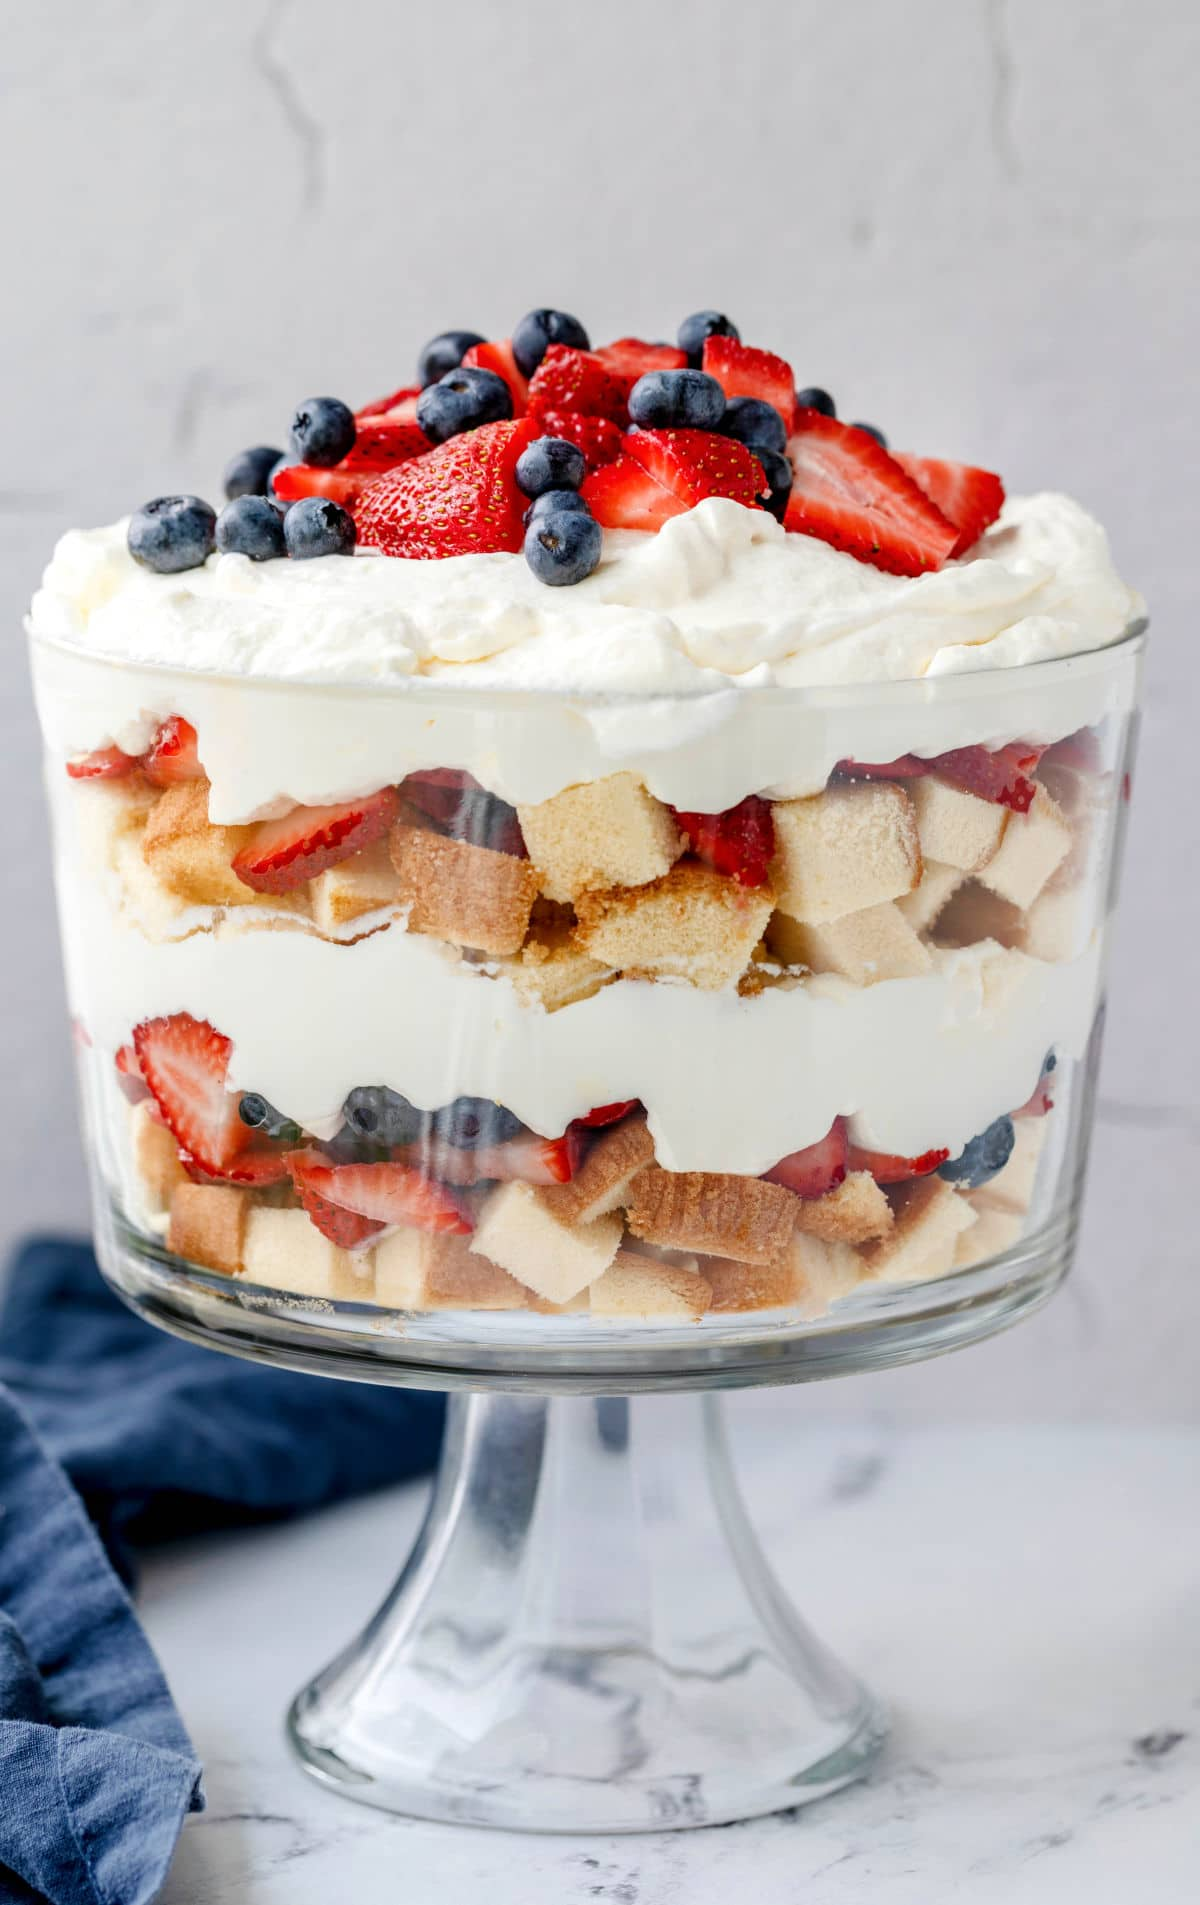 Layers of pound cake whipped cream and fresh berries in a trifle dish.